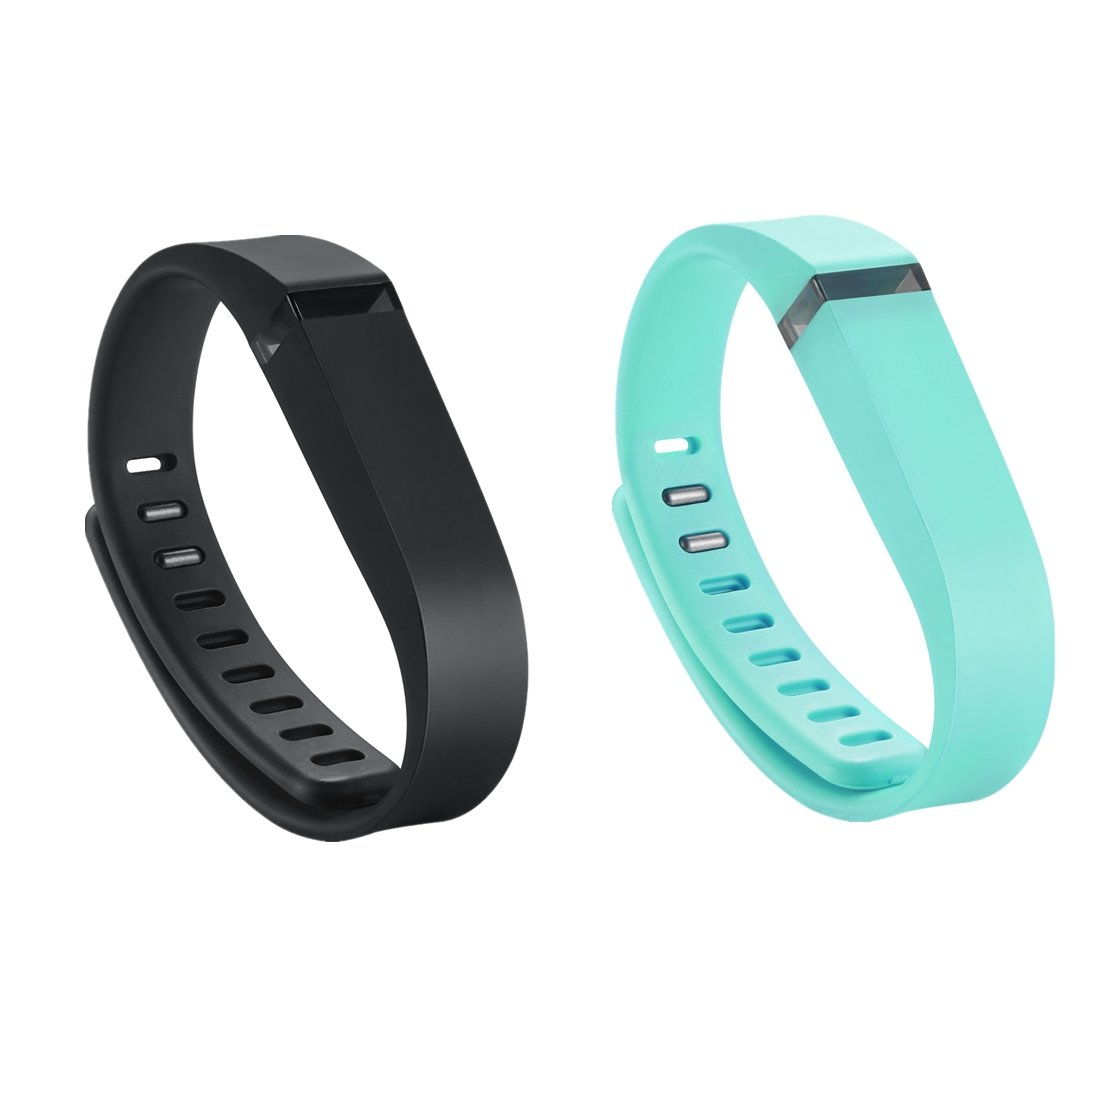 GinCoband 3 PCS Replacement Bands with Adjustable Metal Clasp for Fitbit Flex Wristband